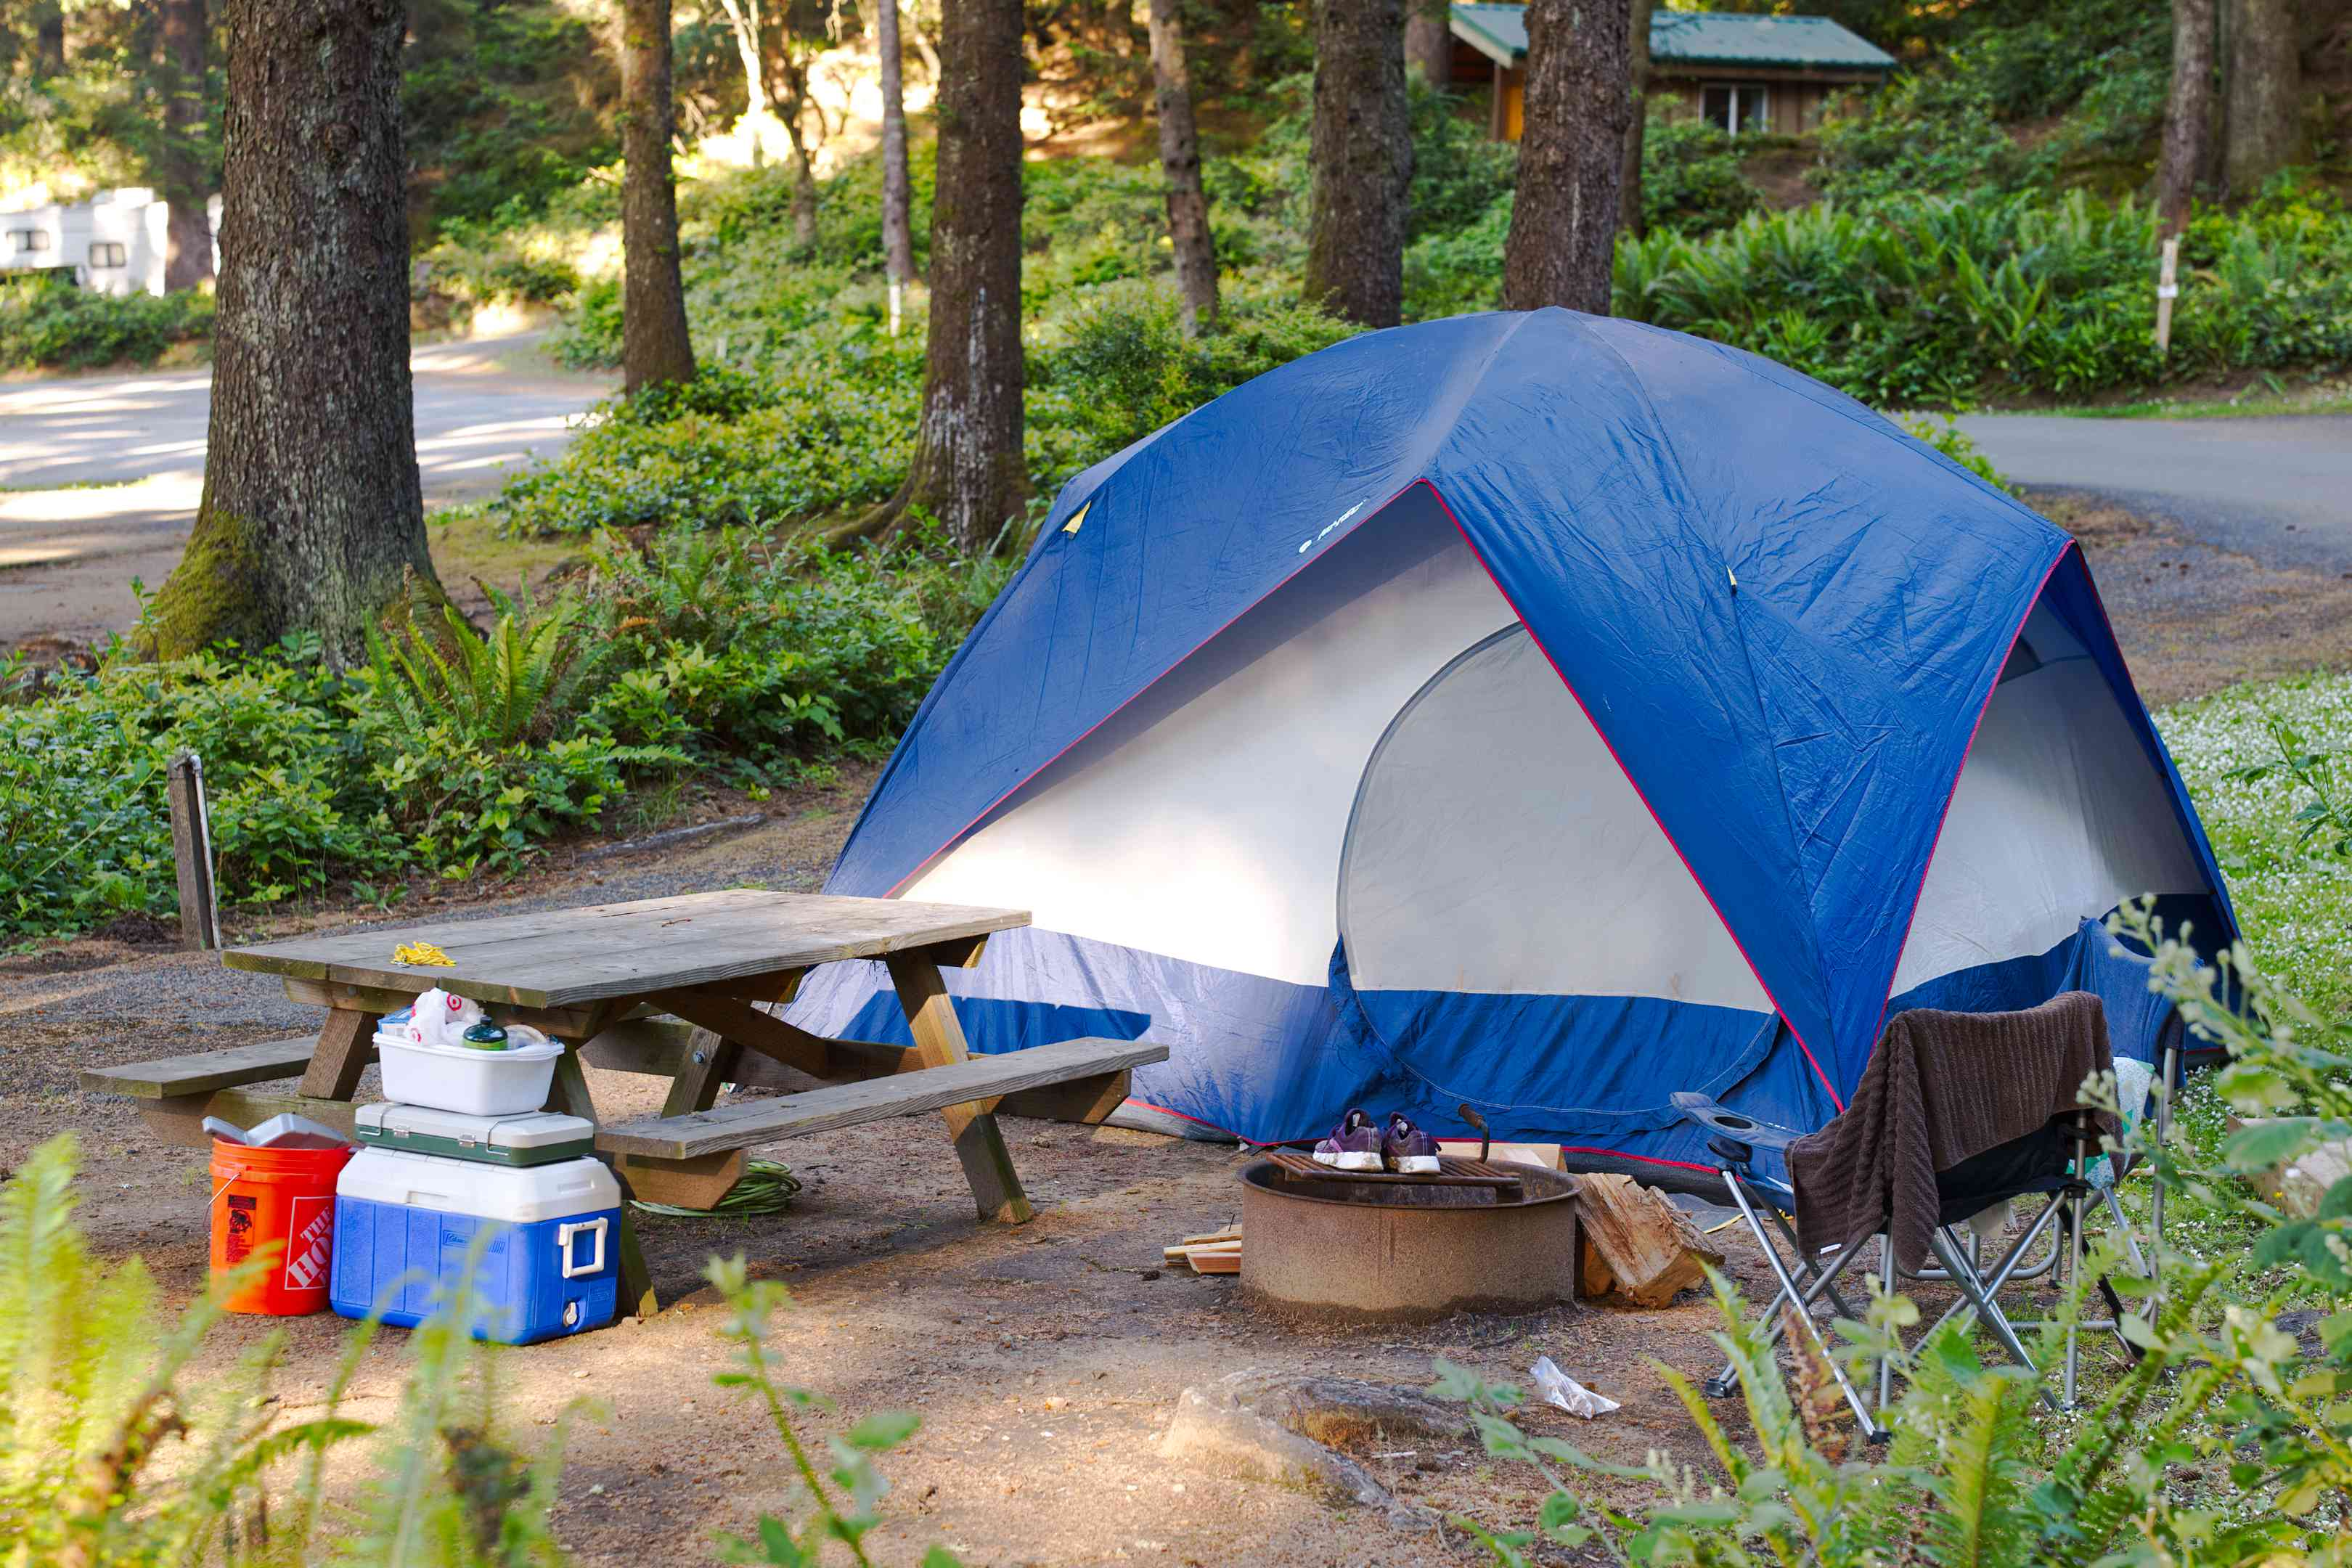 blue and white tent in campsite surrounded by picnic table, coolers, and camping gear